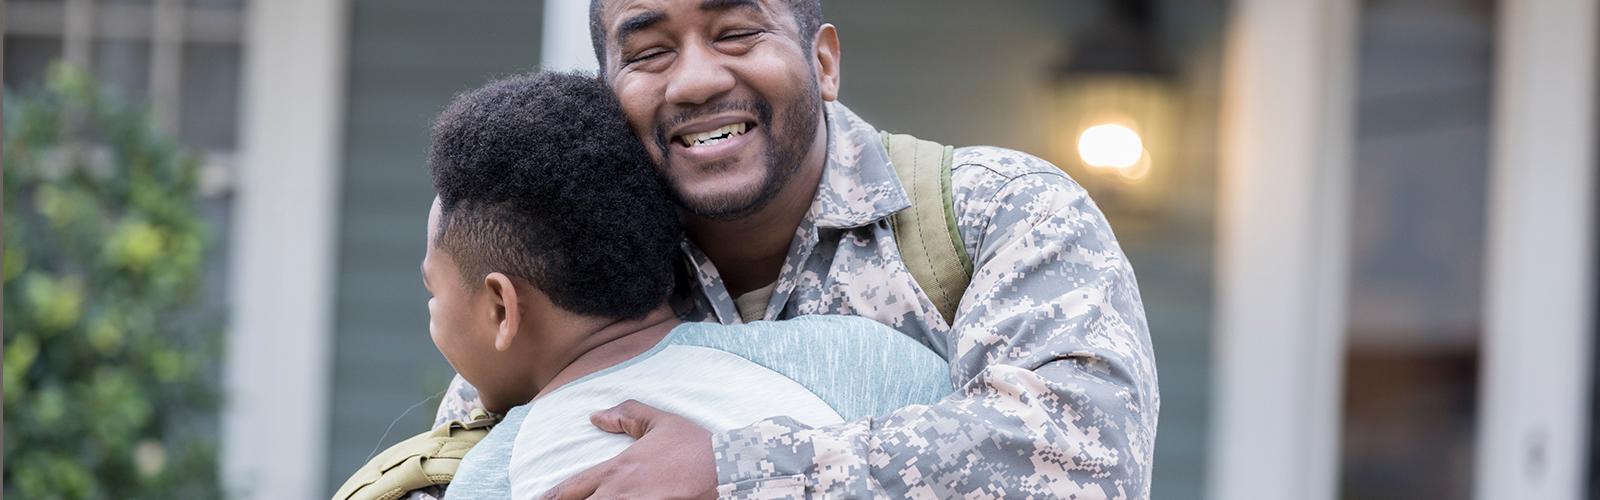 Veteran hugs son